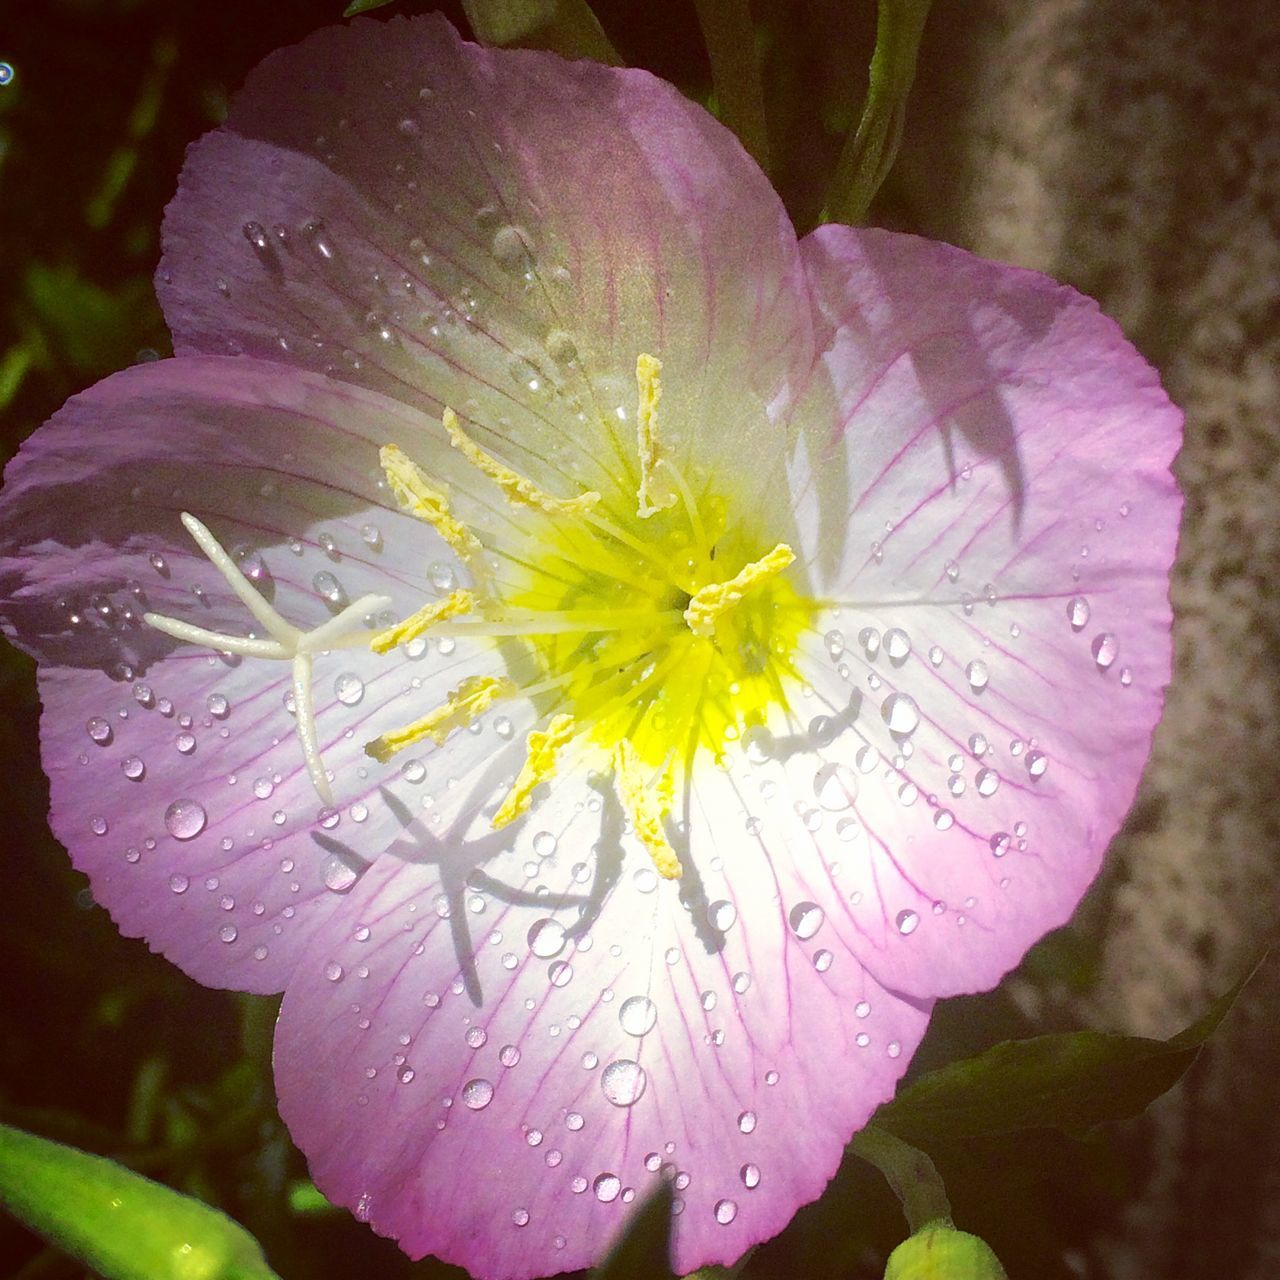 Beauty In Nature Close-up Day Drop Flower Flower Head Fragility Freshness Growth Macro Mexican Primrose Nature No People Outdoors Petal Pink Flower Plant Primrose RainDrop Water Wet